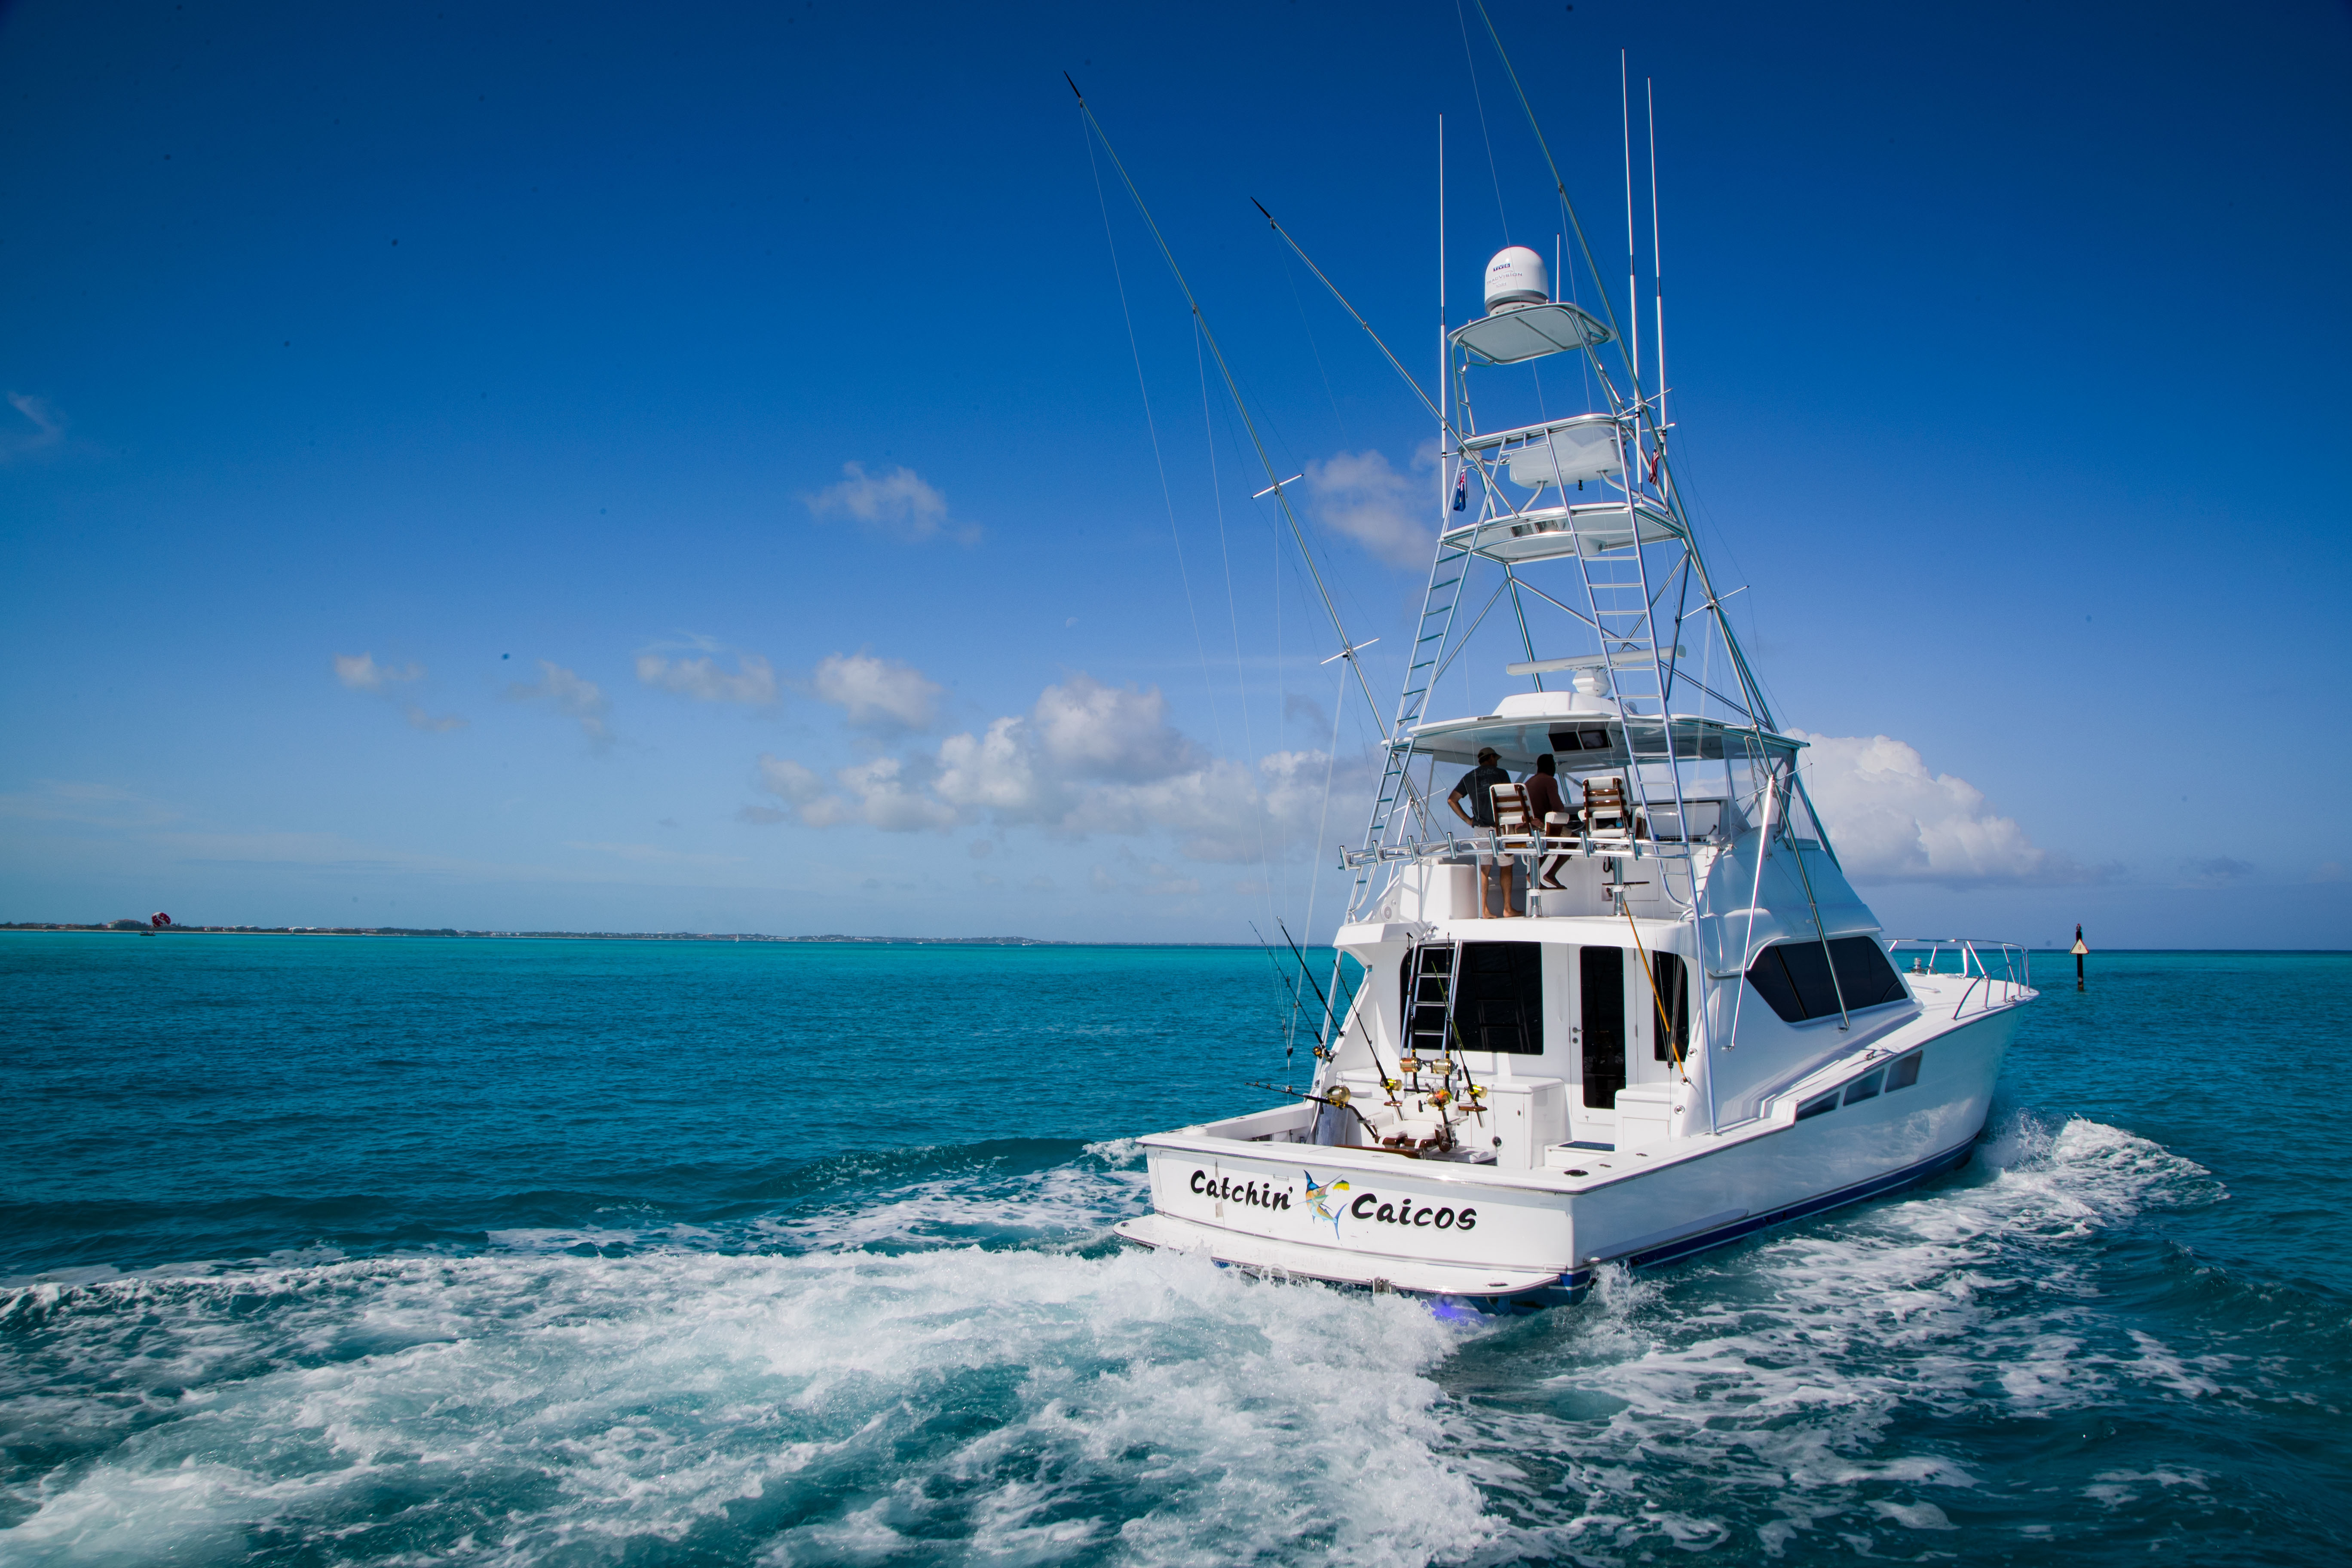 Catchin' Caicos Charters Deliver the Best Fishing Charters in the Caribbean Sea